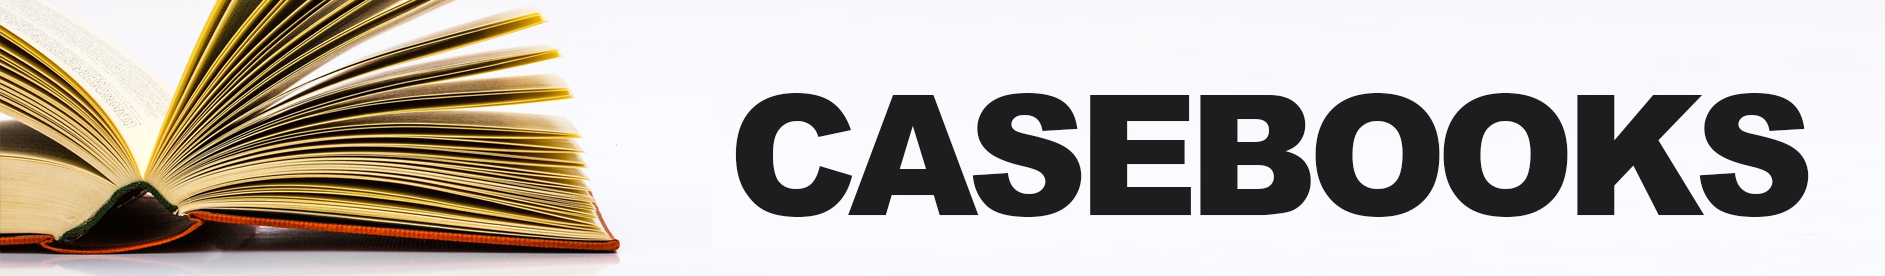 "A banner image reading ""Casebooks"""